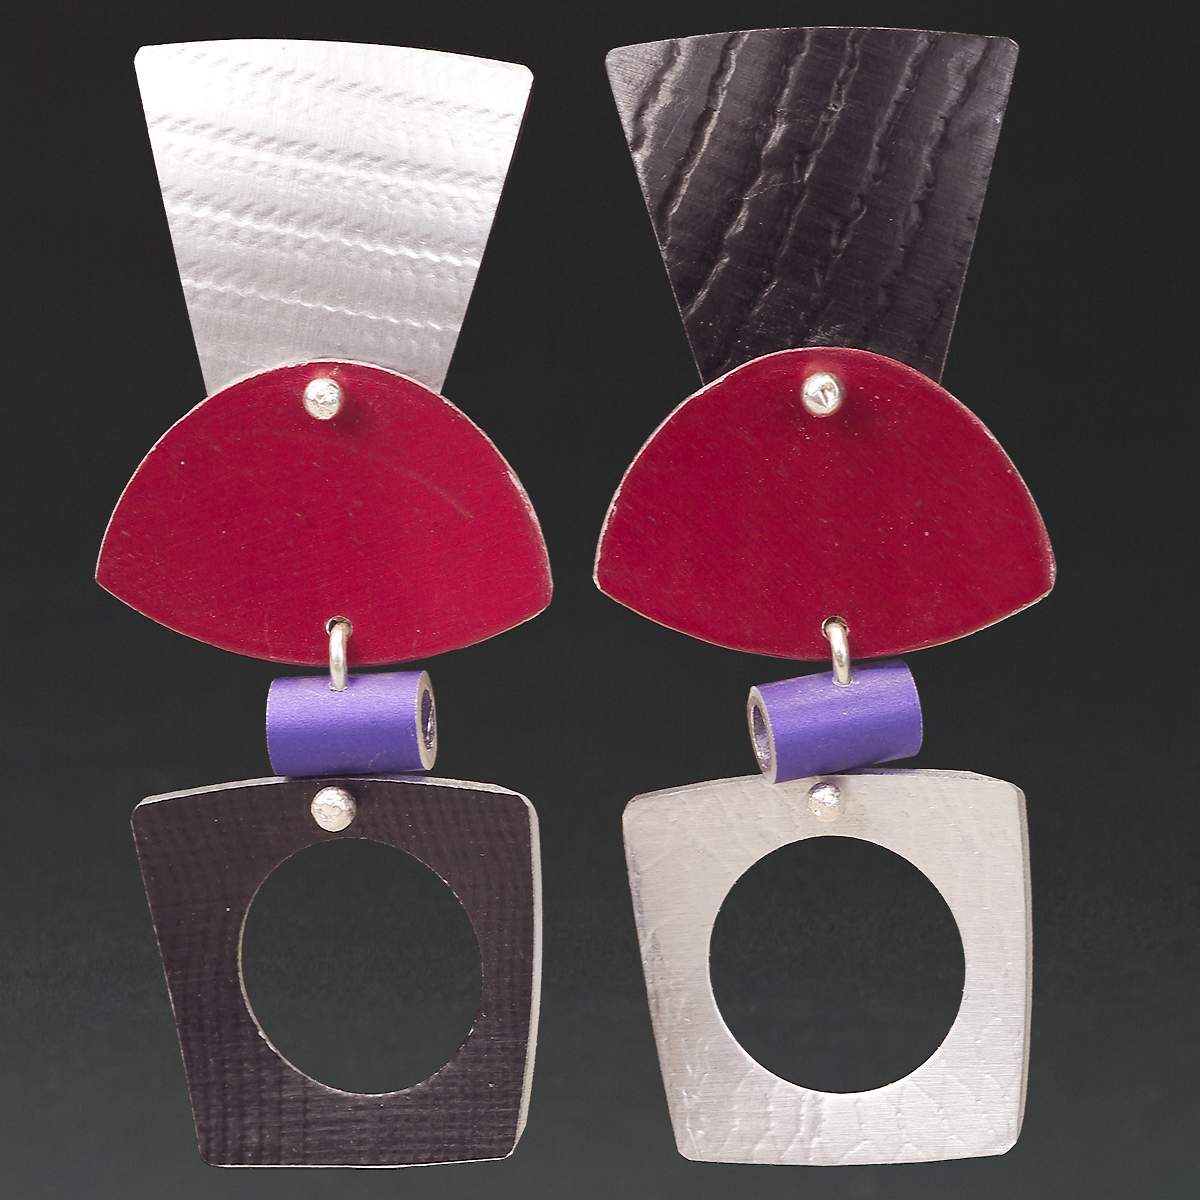 D - Silver, Black, Red